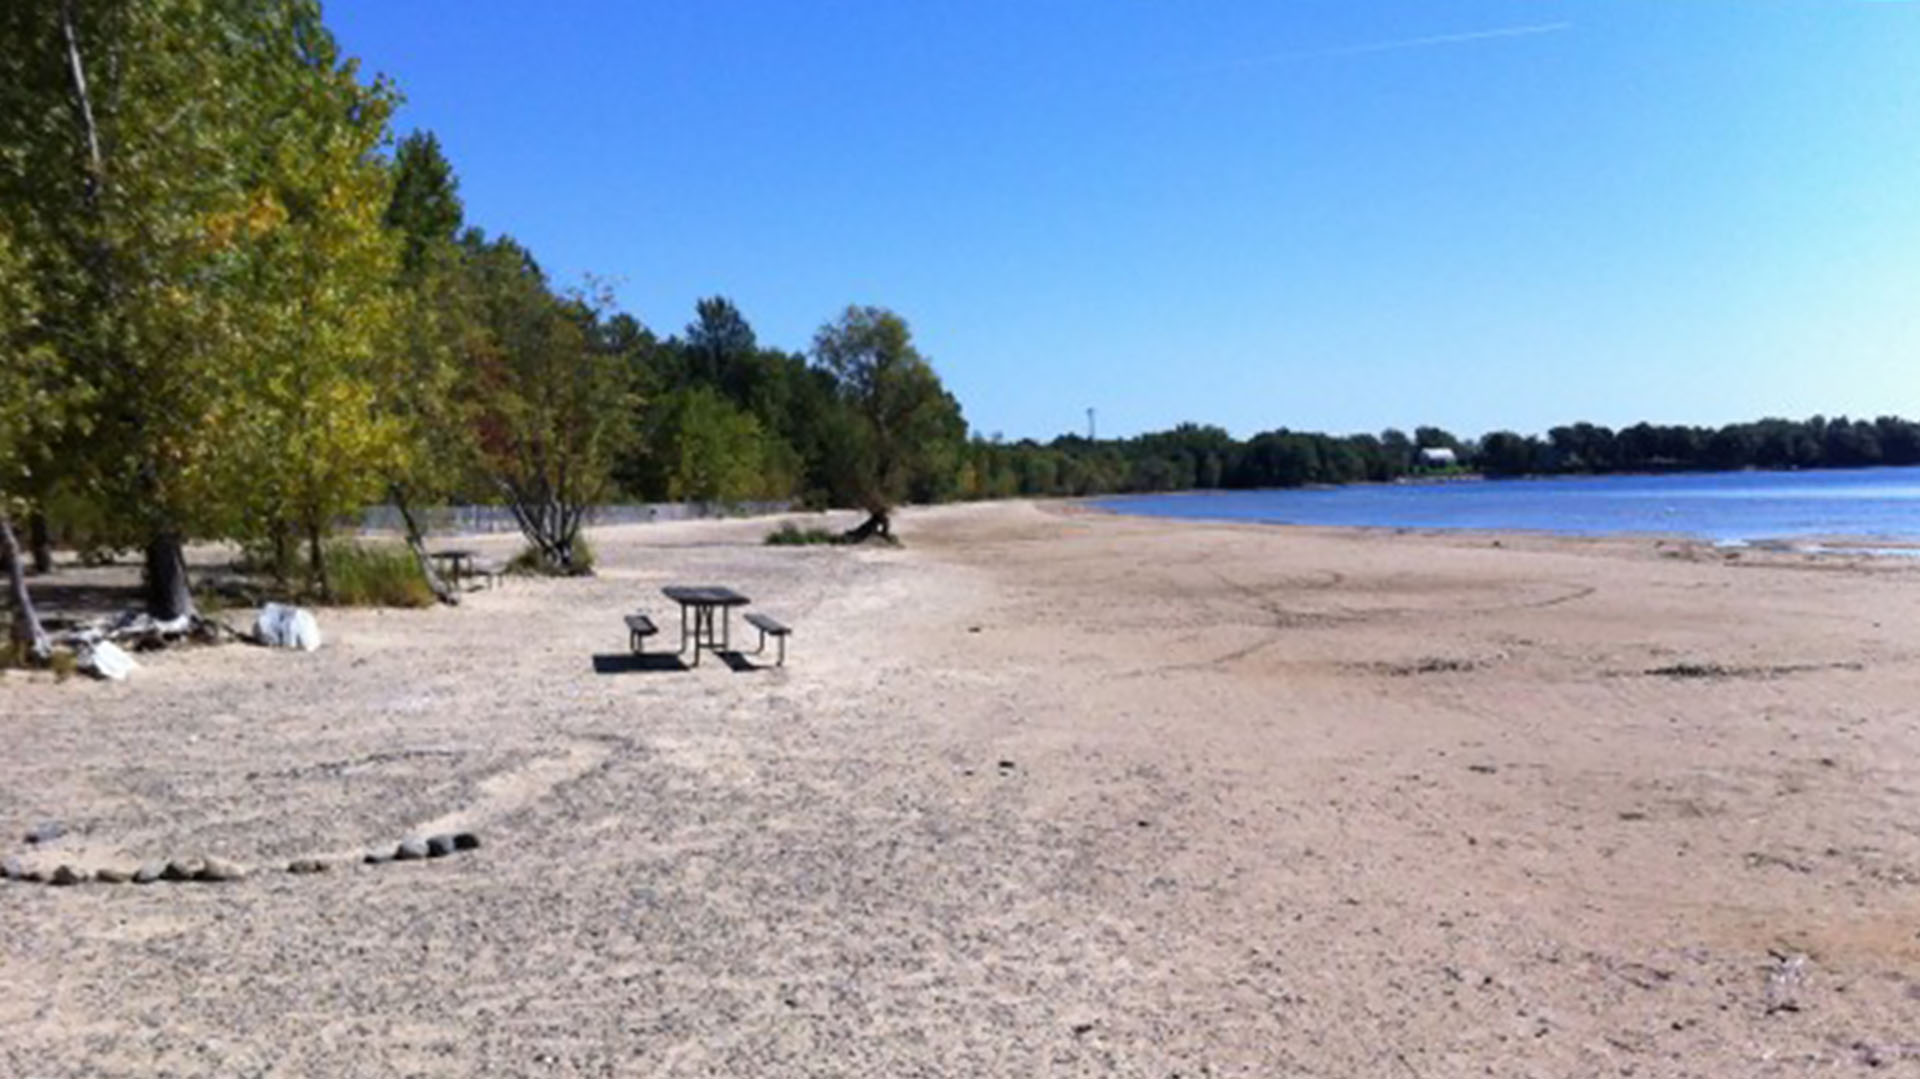 Beach at Alburgh Dunes State Park